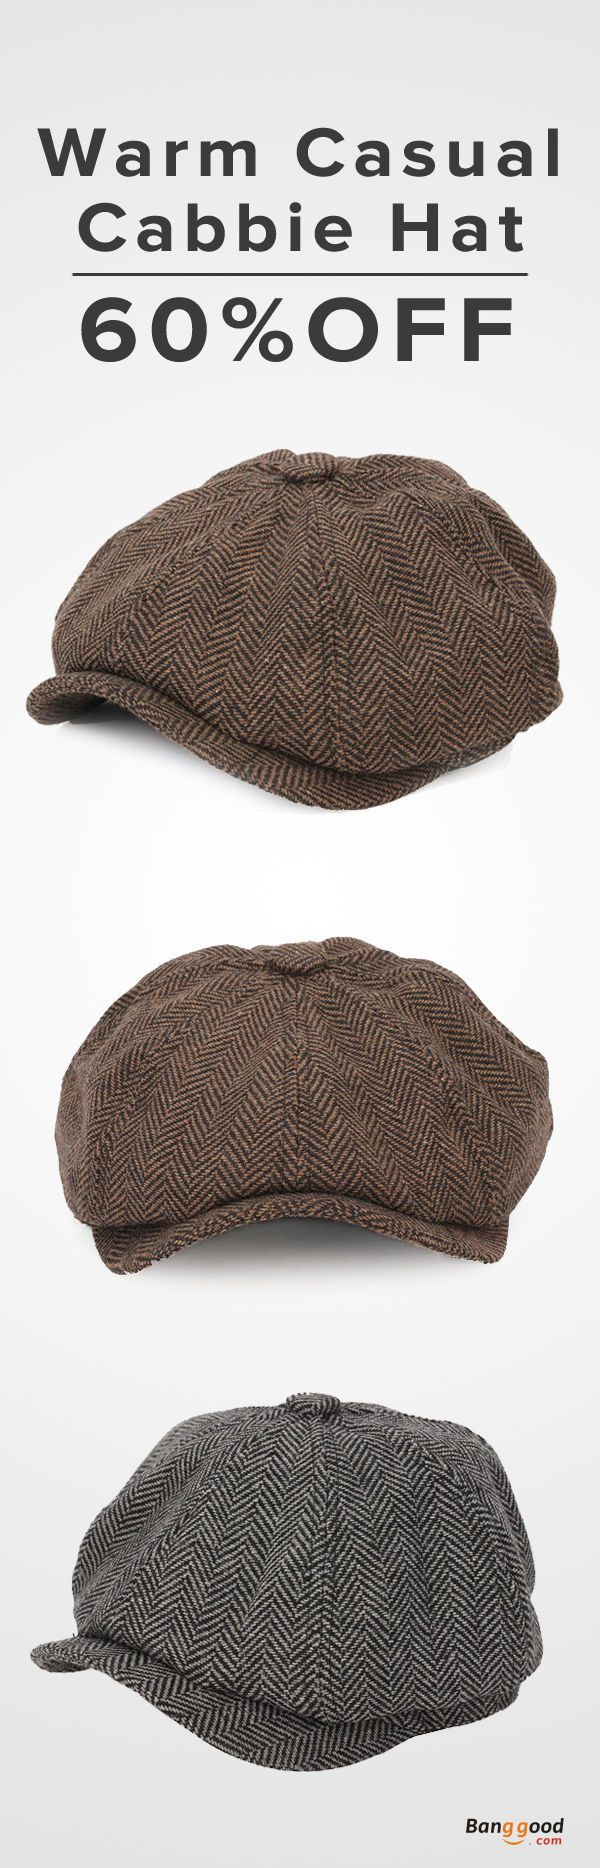 60%OFF! $11.59+Free shipping. Cabbie Hat, Newsboy Beret Cap, Outdoor, Casual, Winter, Visor, Woolen, Blending. Give you a warm and fashion winter, shop now~